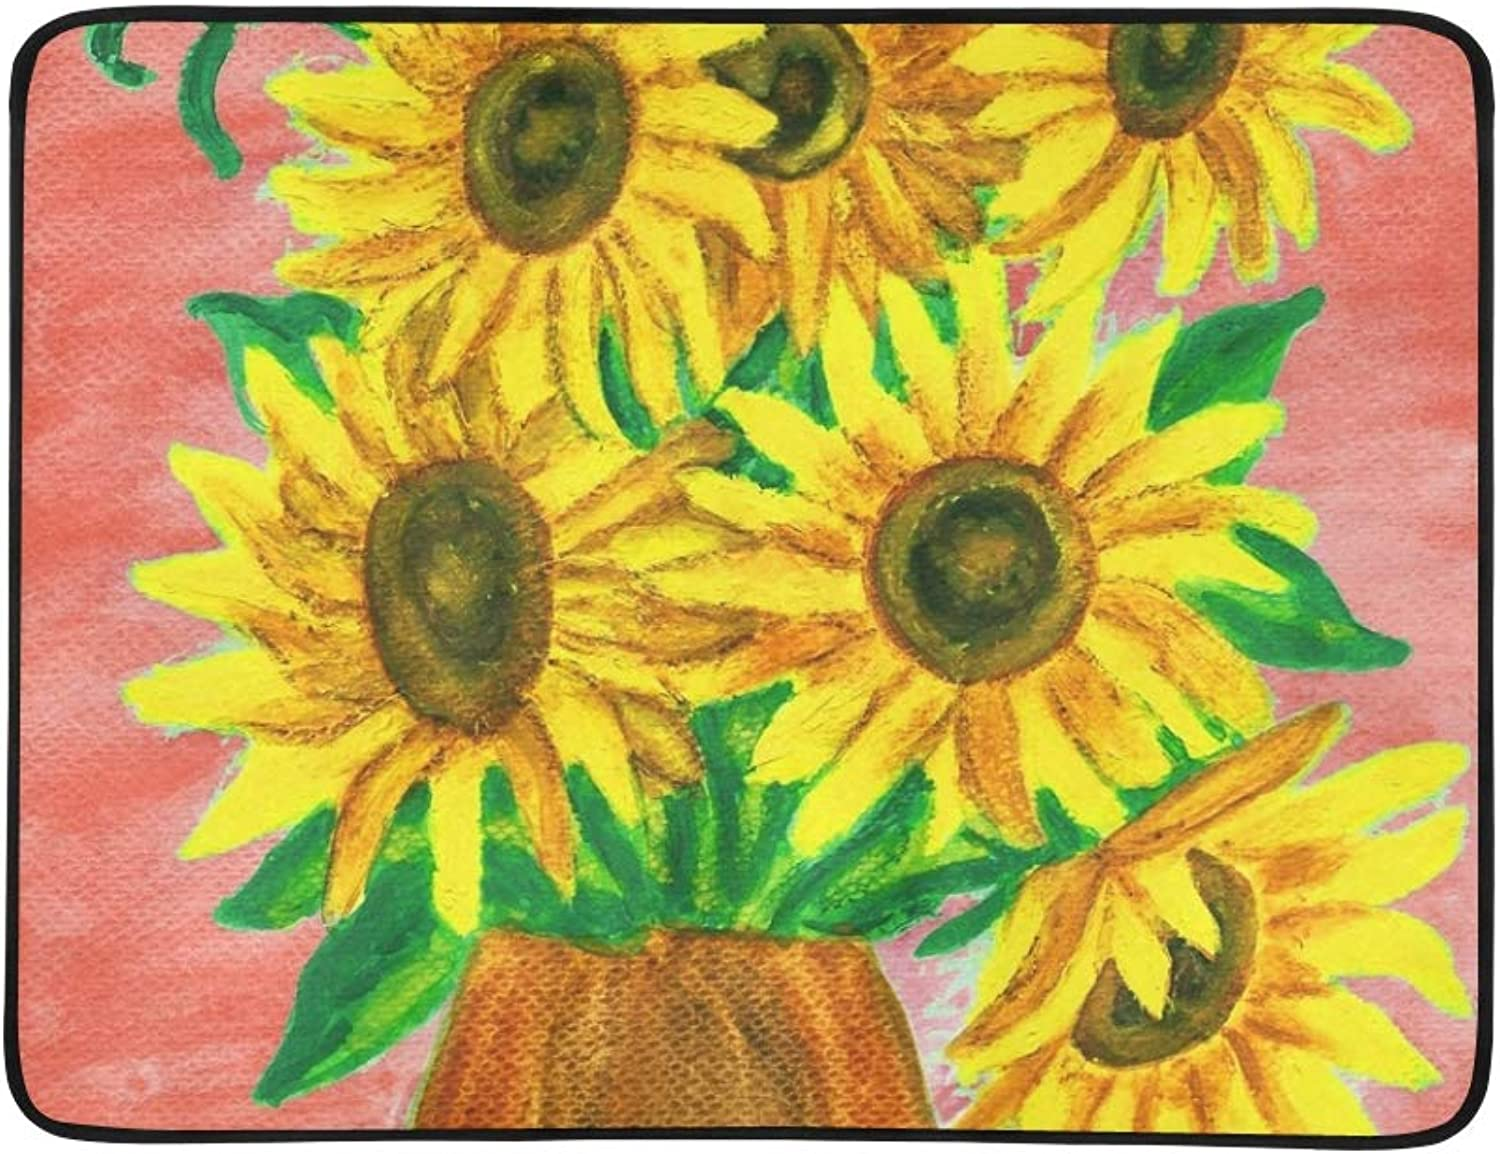 Bouquet Sunflowers Hand Painted Picture Acrylic Portable and Foldable Blanket Mat 60x78 Inch Handy Mat for Camping Picnic Beach Indoor Outdoor Travel